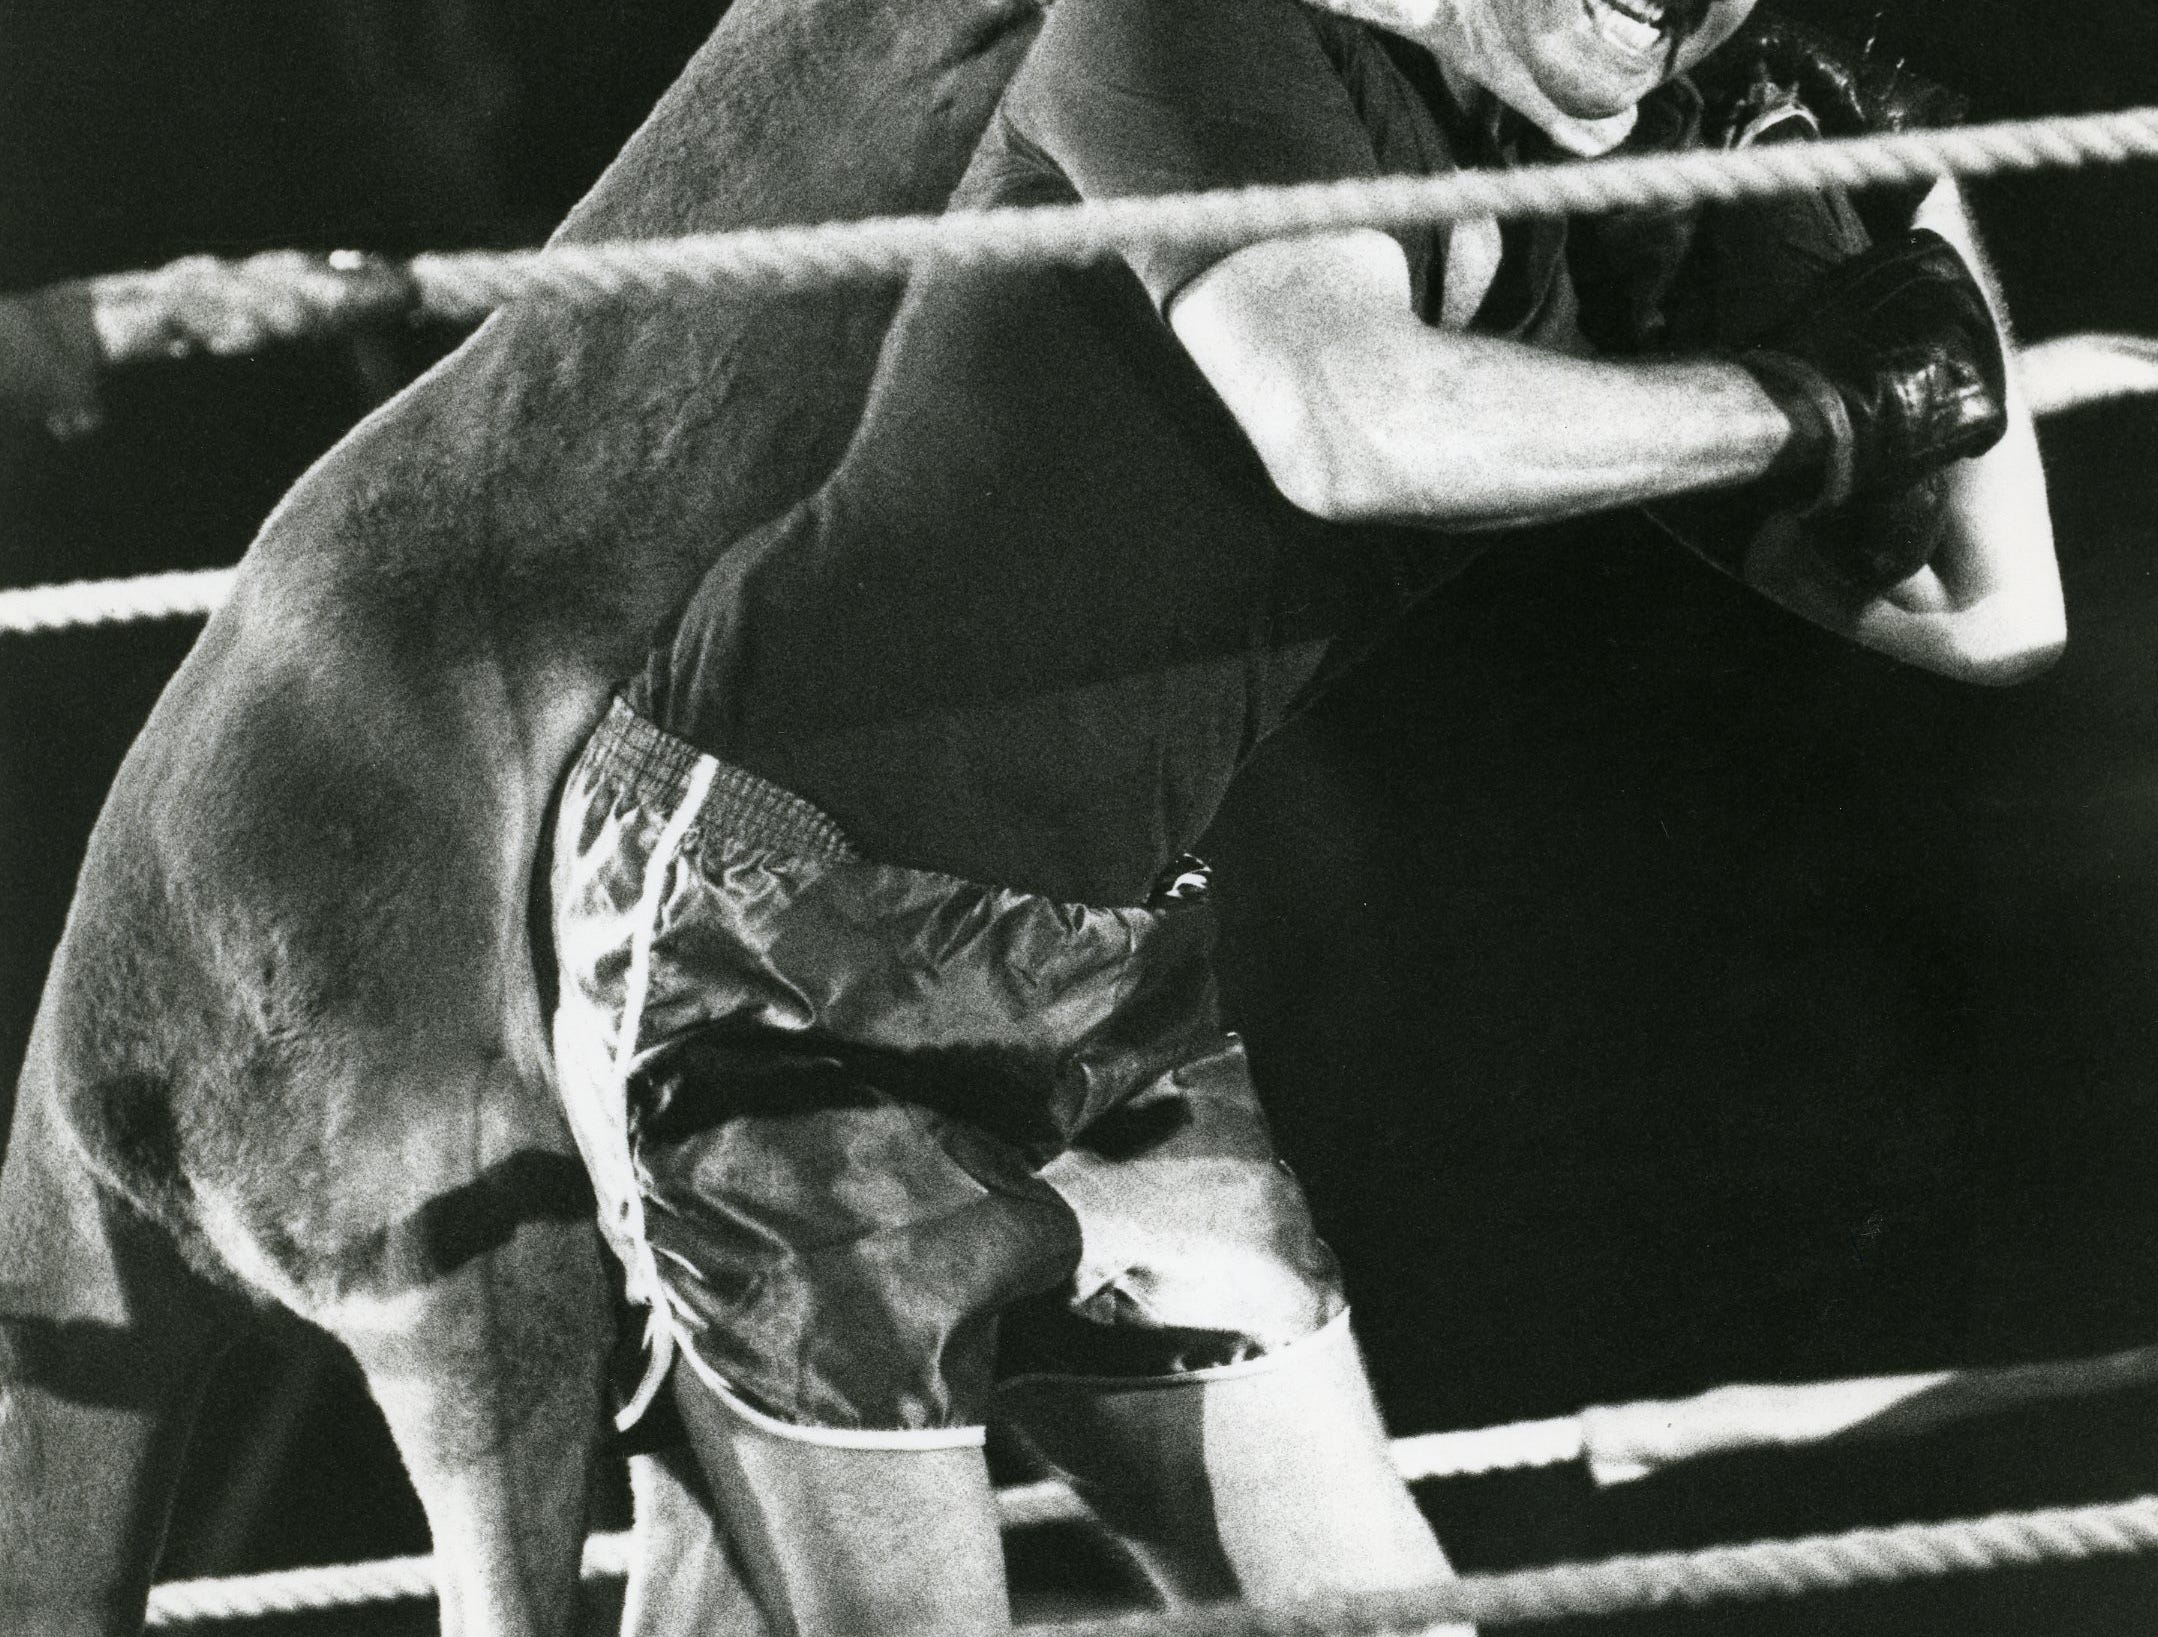 It was a boxing event for the Shrine Circus at the Memorial Coliseum on October 7, 1983, but this audience volunteer quickly discovered that the boxing kangaroo was more of a wrestler.